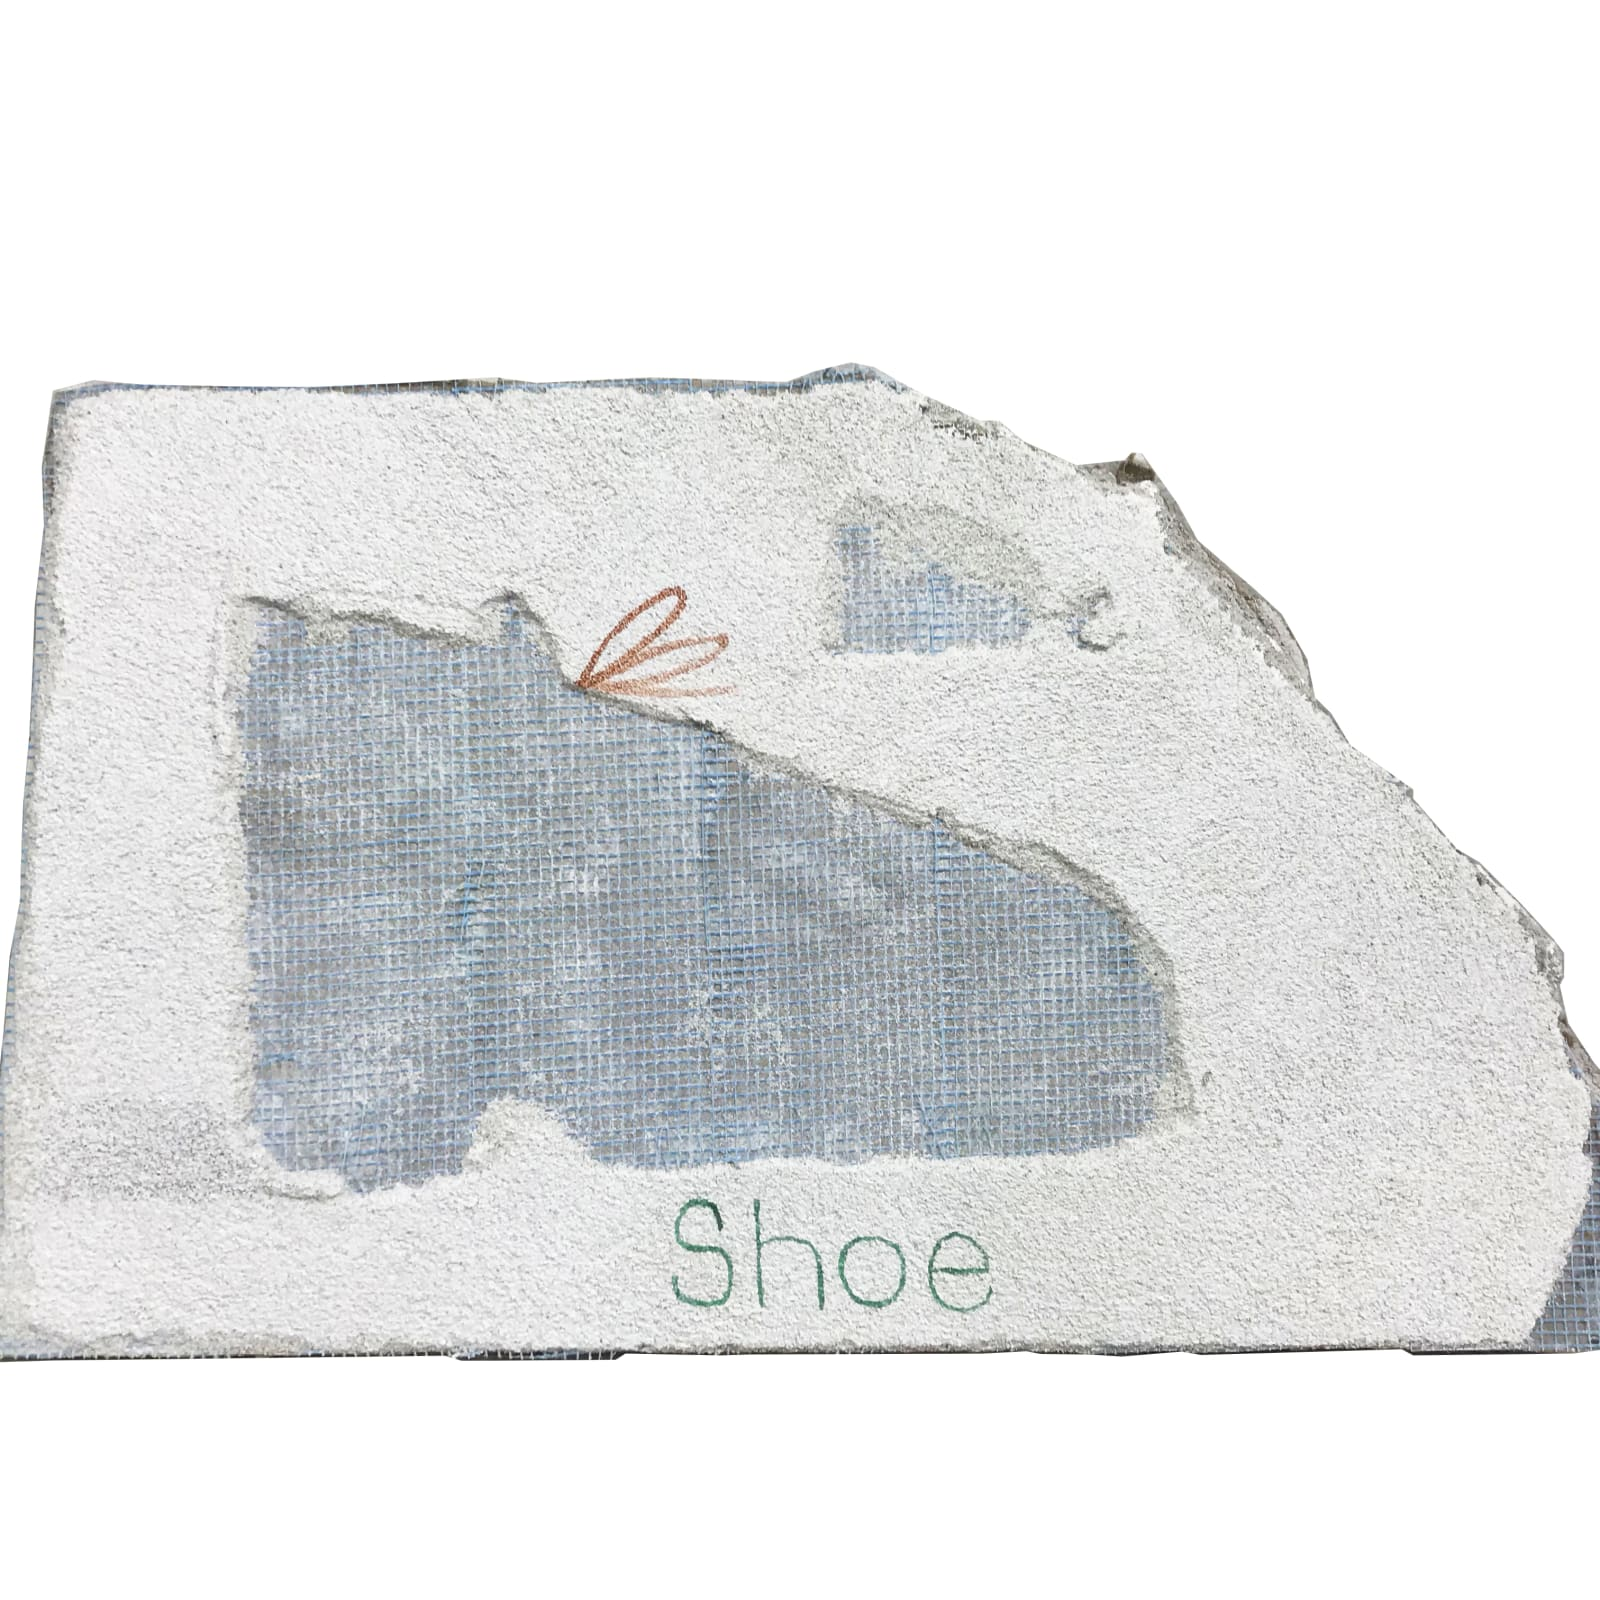 Mariel Capanna  Shoe, 2019  Lime plaster, earth pigment, watercolor and pencil on drywall  9 1/2 x 16 3/4 in (24.1 x 42.5 cm)